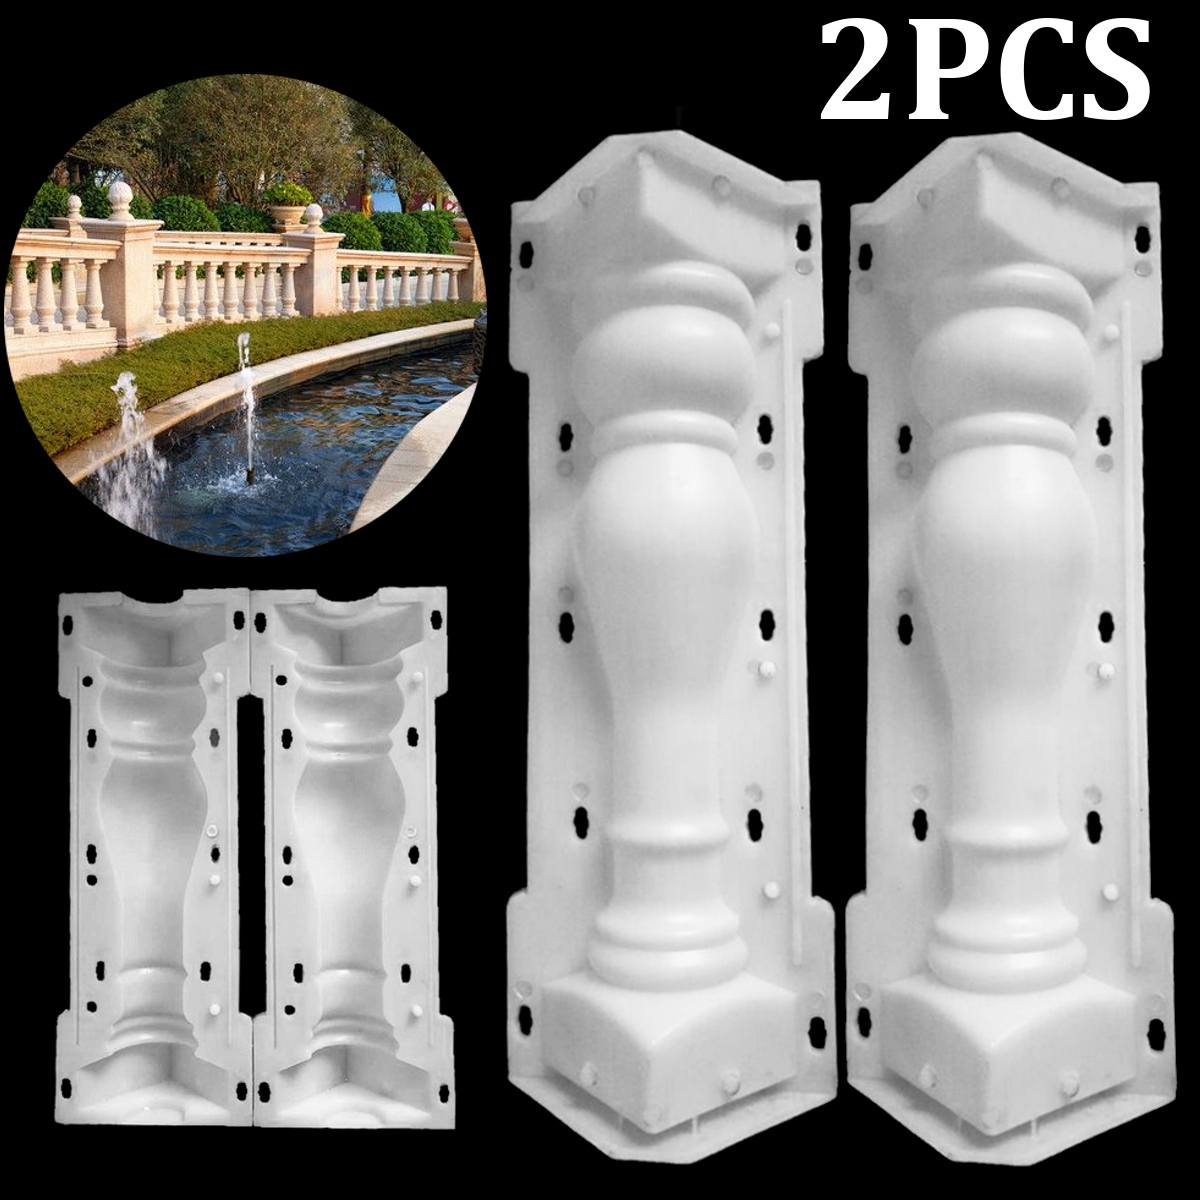 60x14cm Roman Column Mold Balcony Garden Pool Fence Cement Railing Plaster Concrete Mold Column Mold Guardrail Building